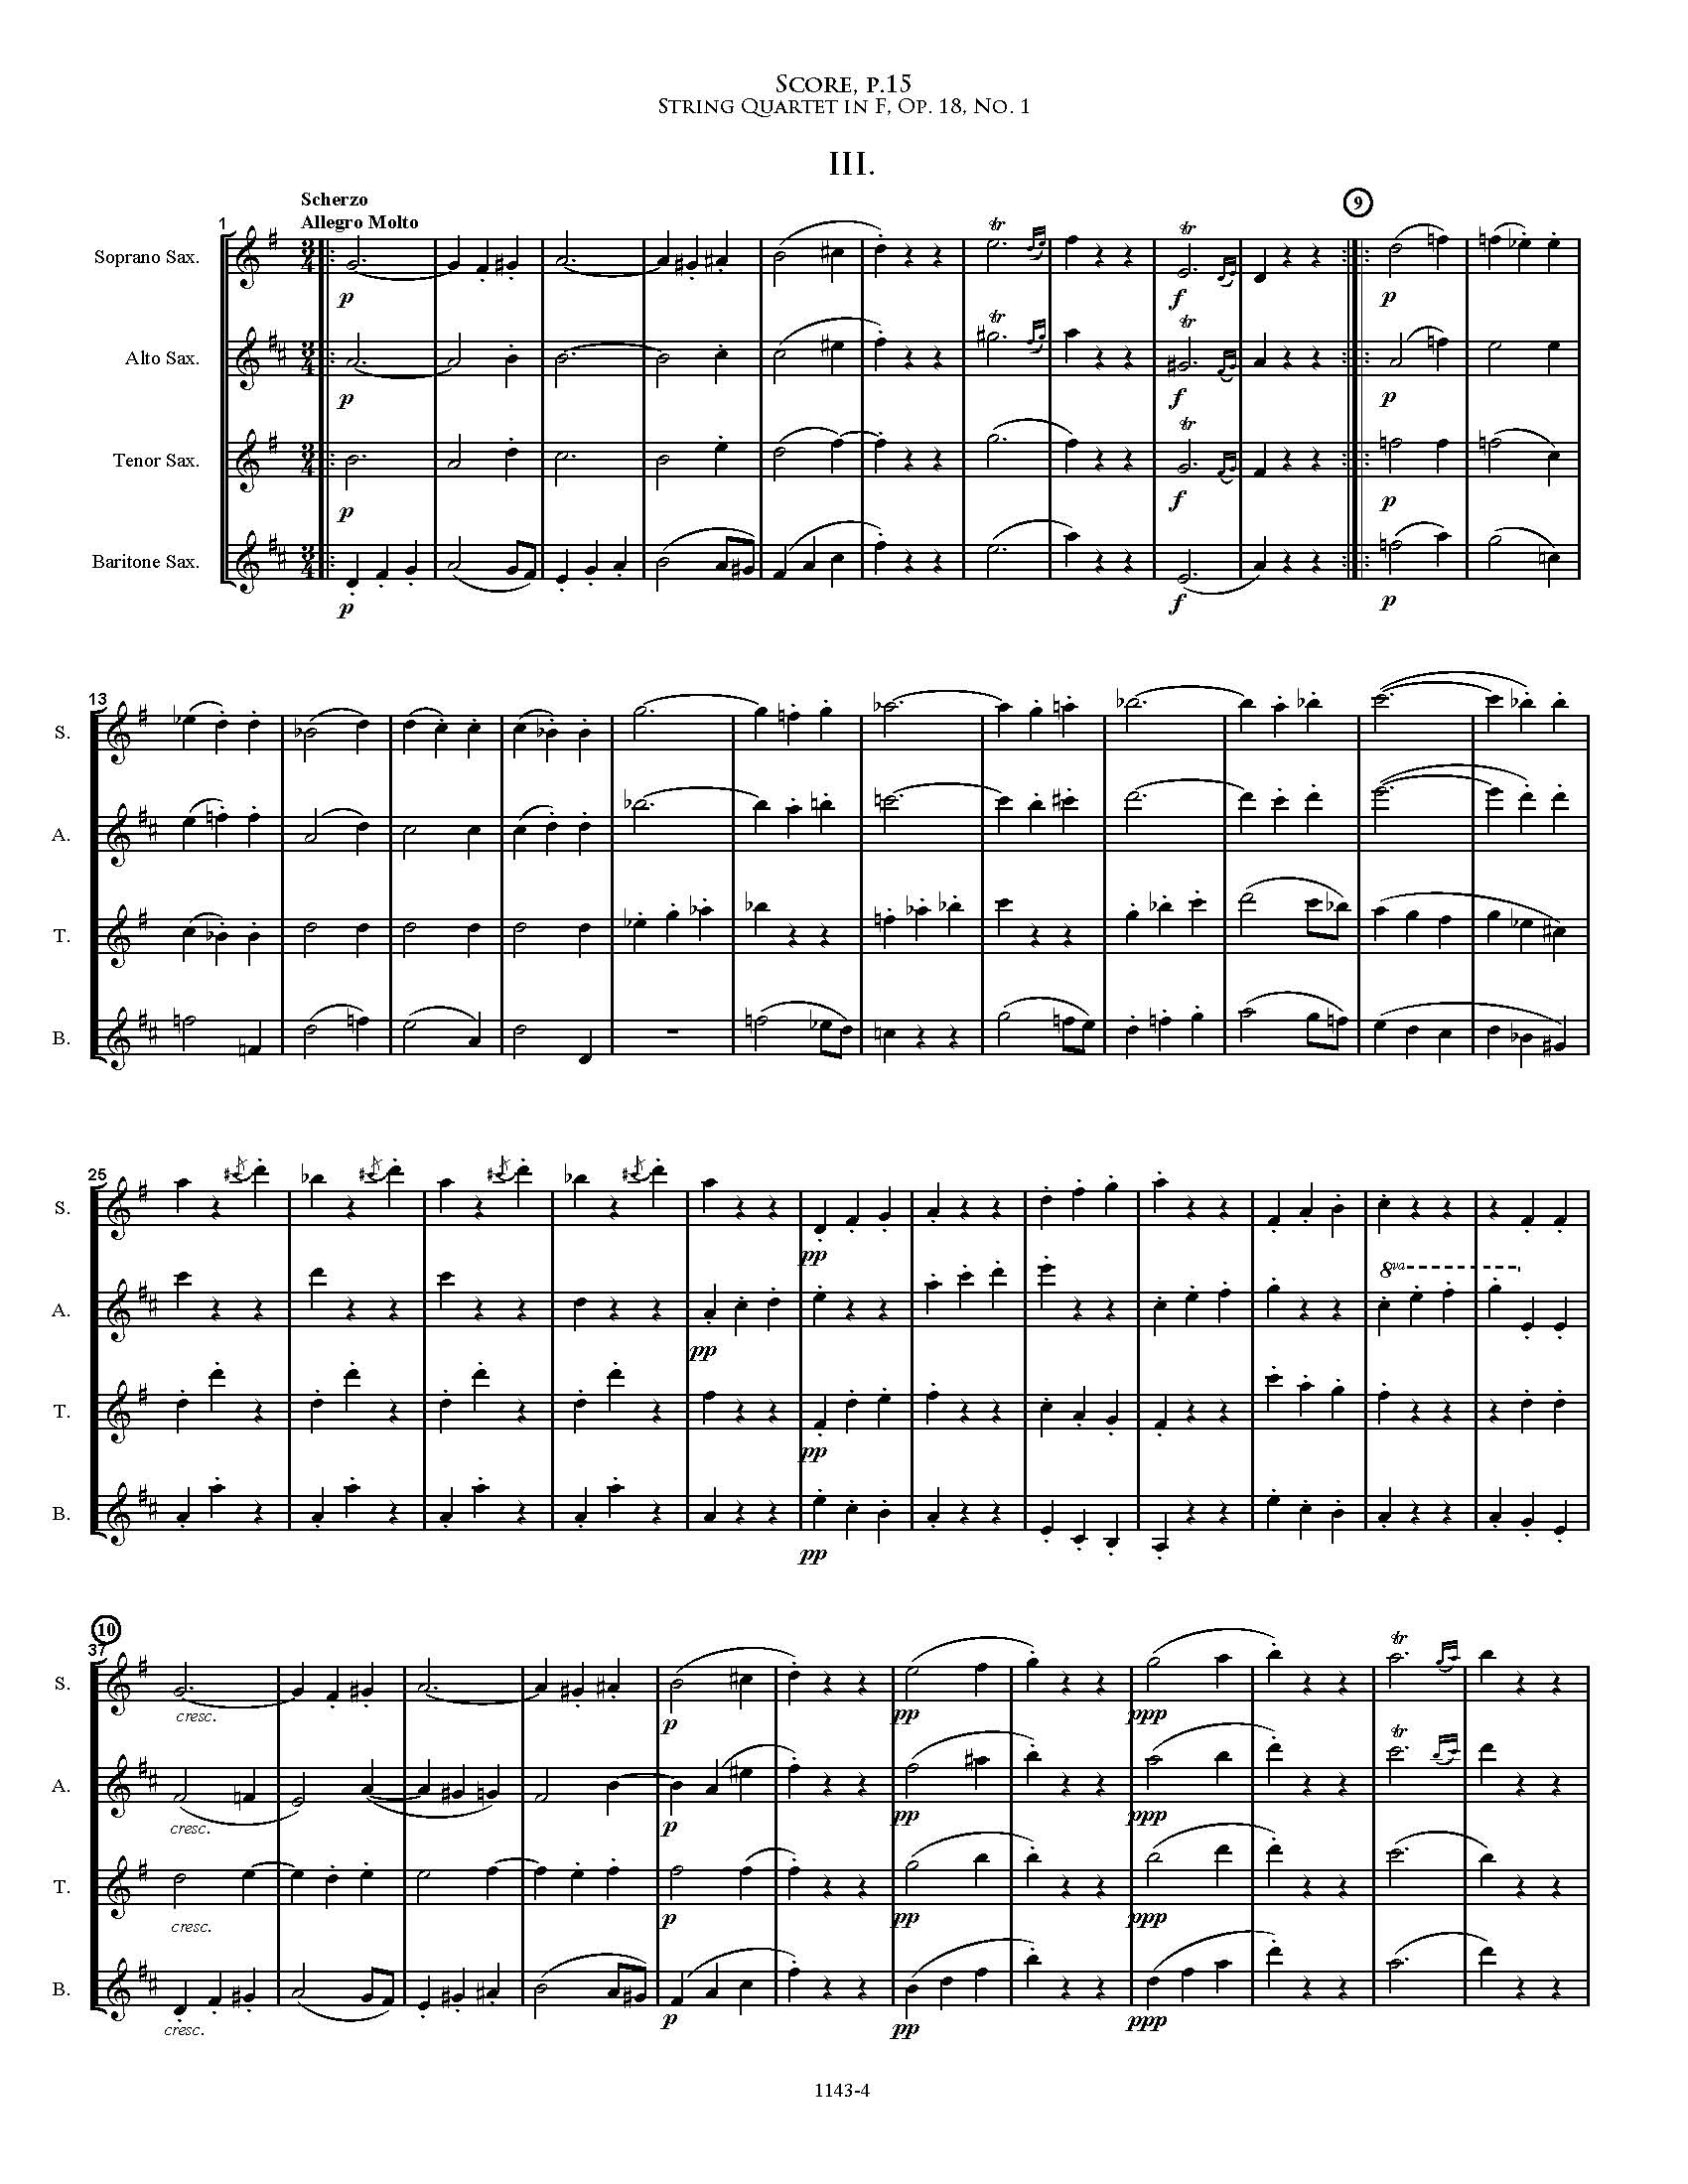 Op. 18, No. 4, Movement 4 - Allegro - Score